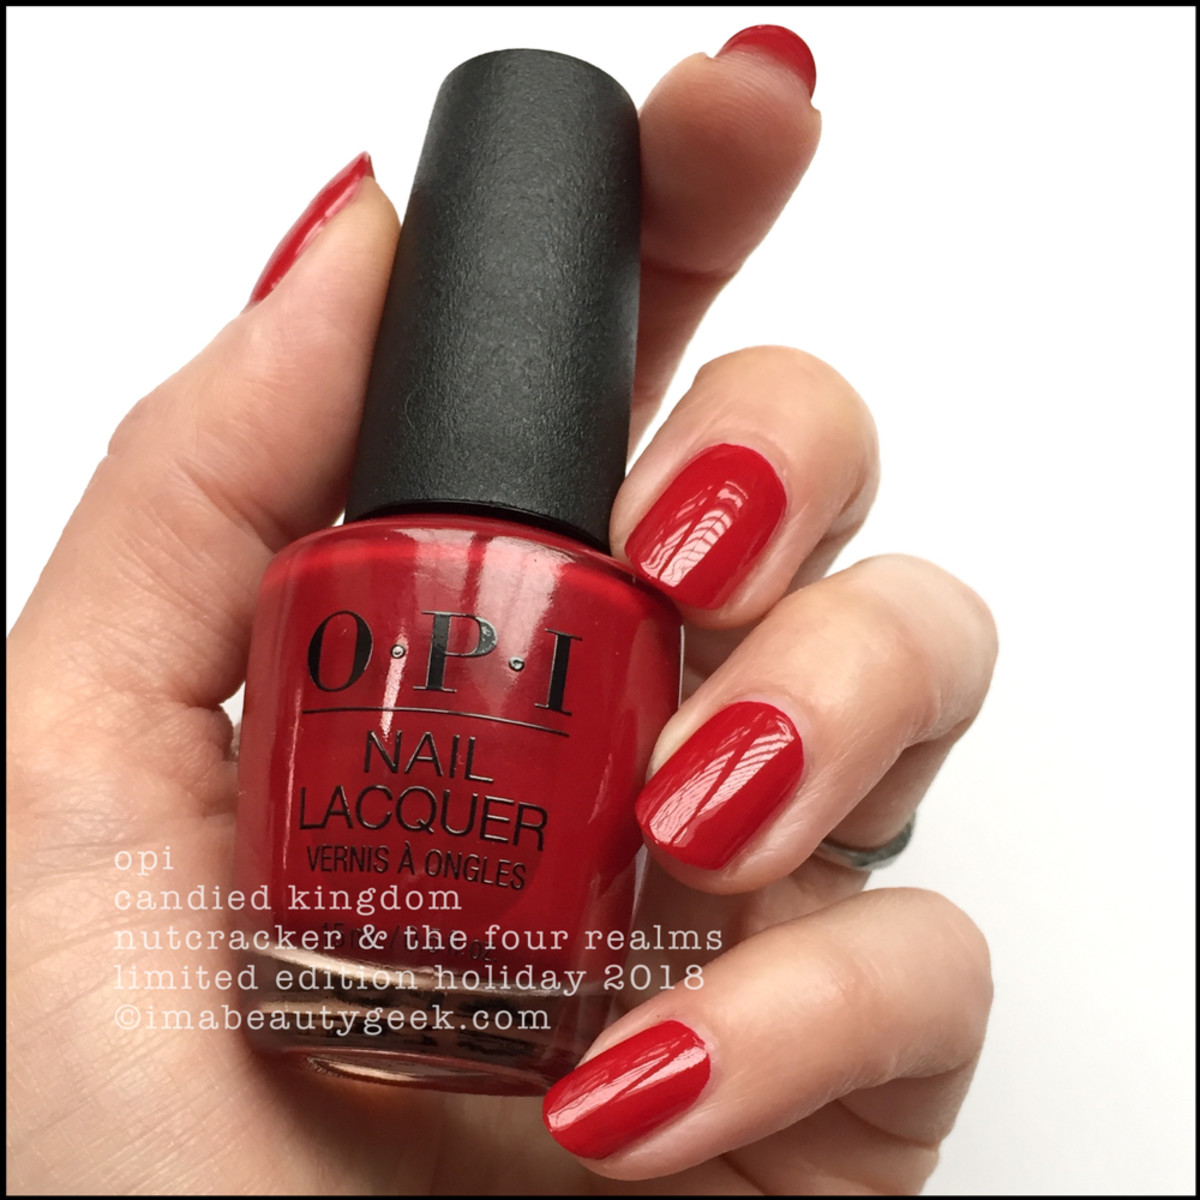 OPI Candied Kingdom - OPI Nutcracker Holiday 2018